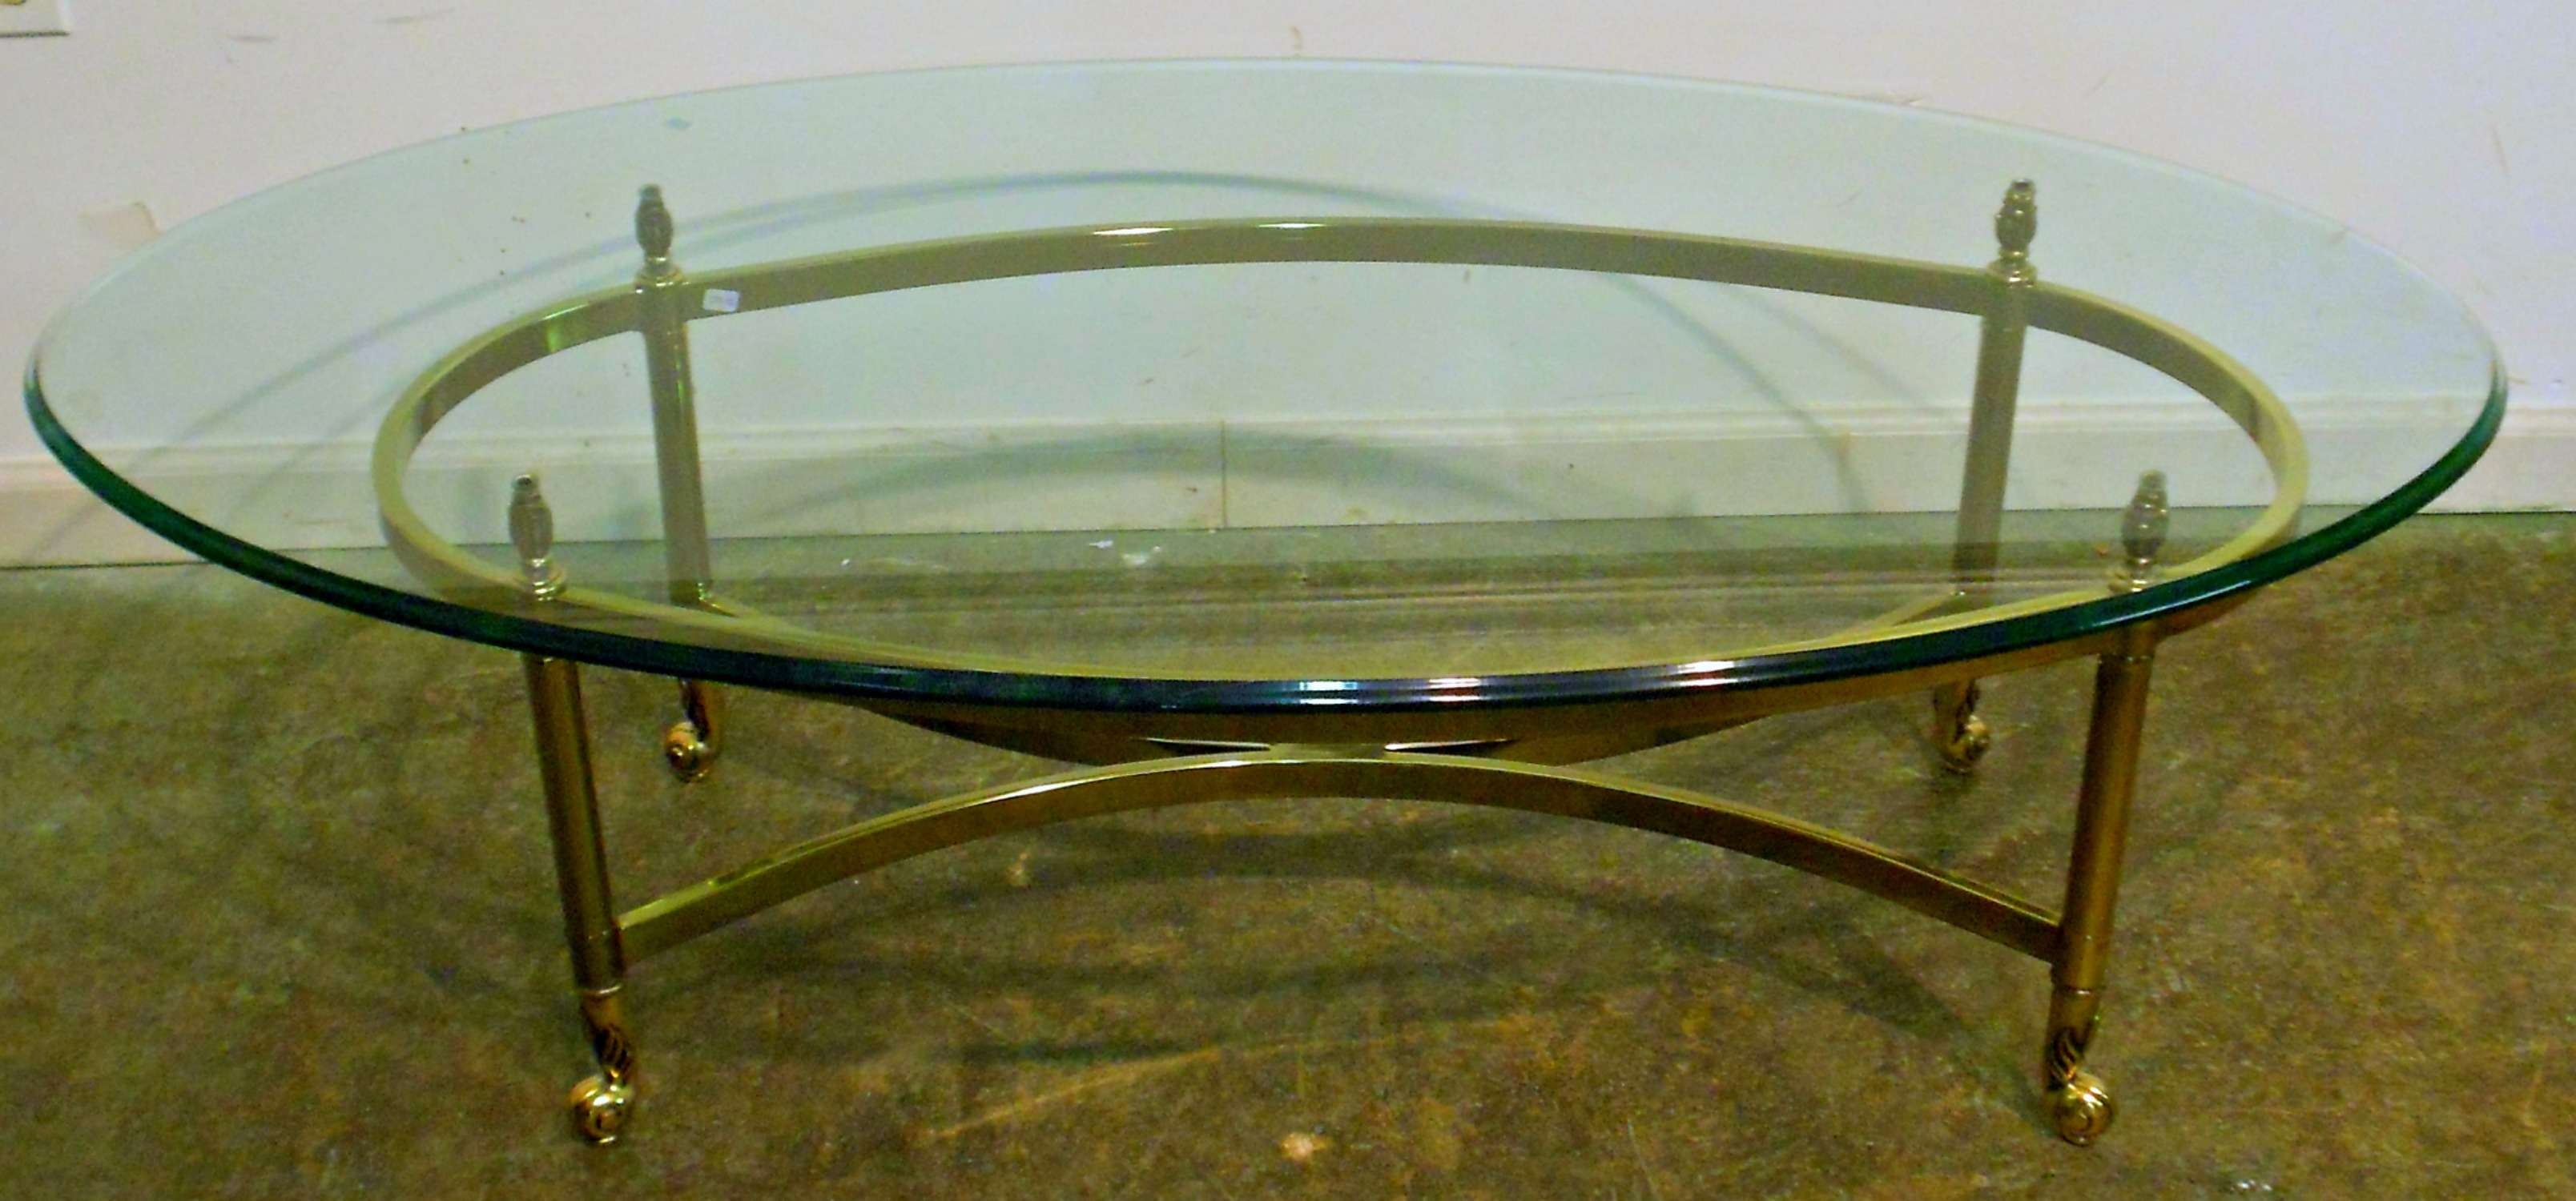 Most Popular Spiral Glass Coffee Table In Decorations : Unique Coffee Table Contemporary Metal Glass Awesome (View 20 of 20)